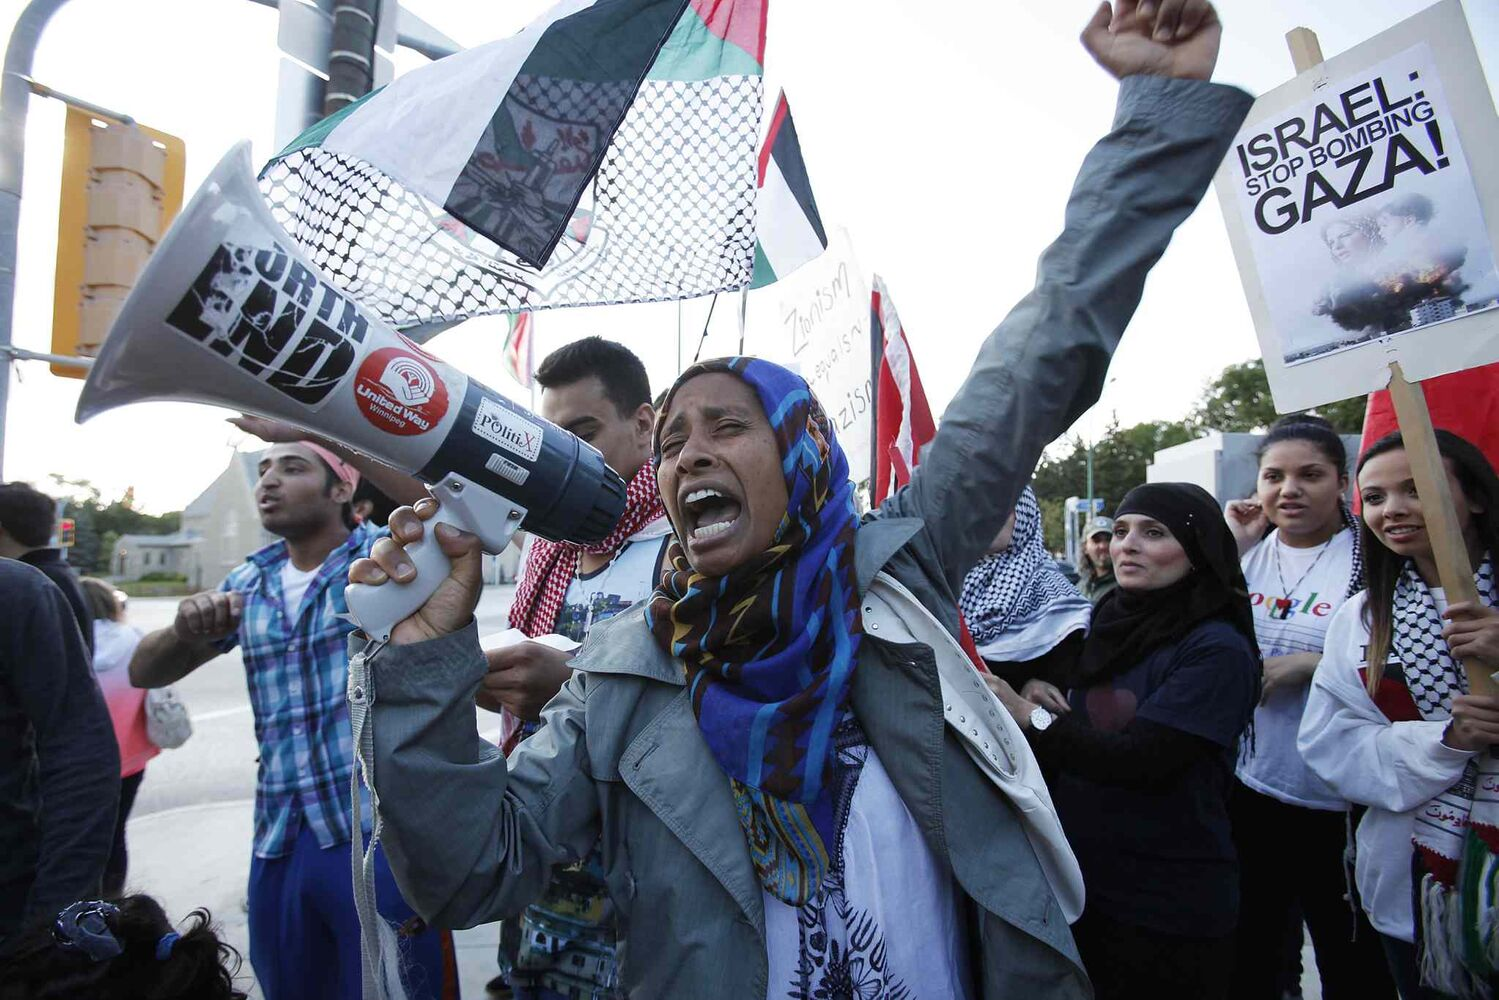 Palestinian supporters hold a peaceful rally at the Manitoba Legislature Monday. (John Woods / Winnipeg Free Press)